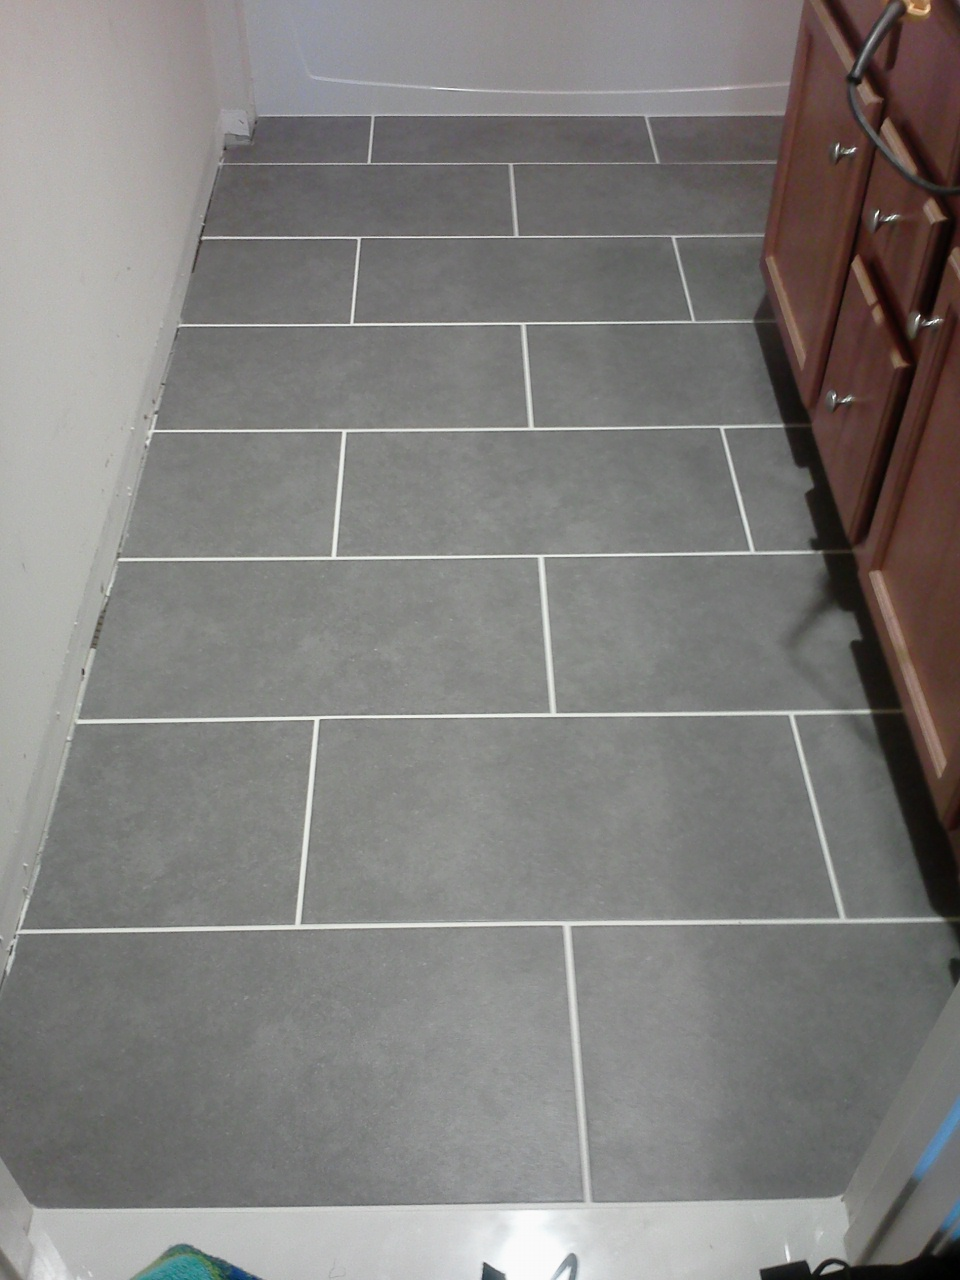 Lowes Bathroom Floor Tiles : Brilliant Brown Lowes Bathroom Floor ...